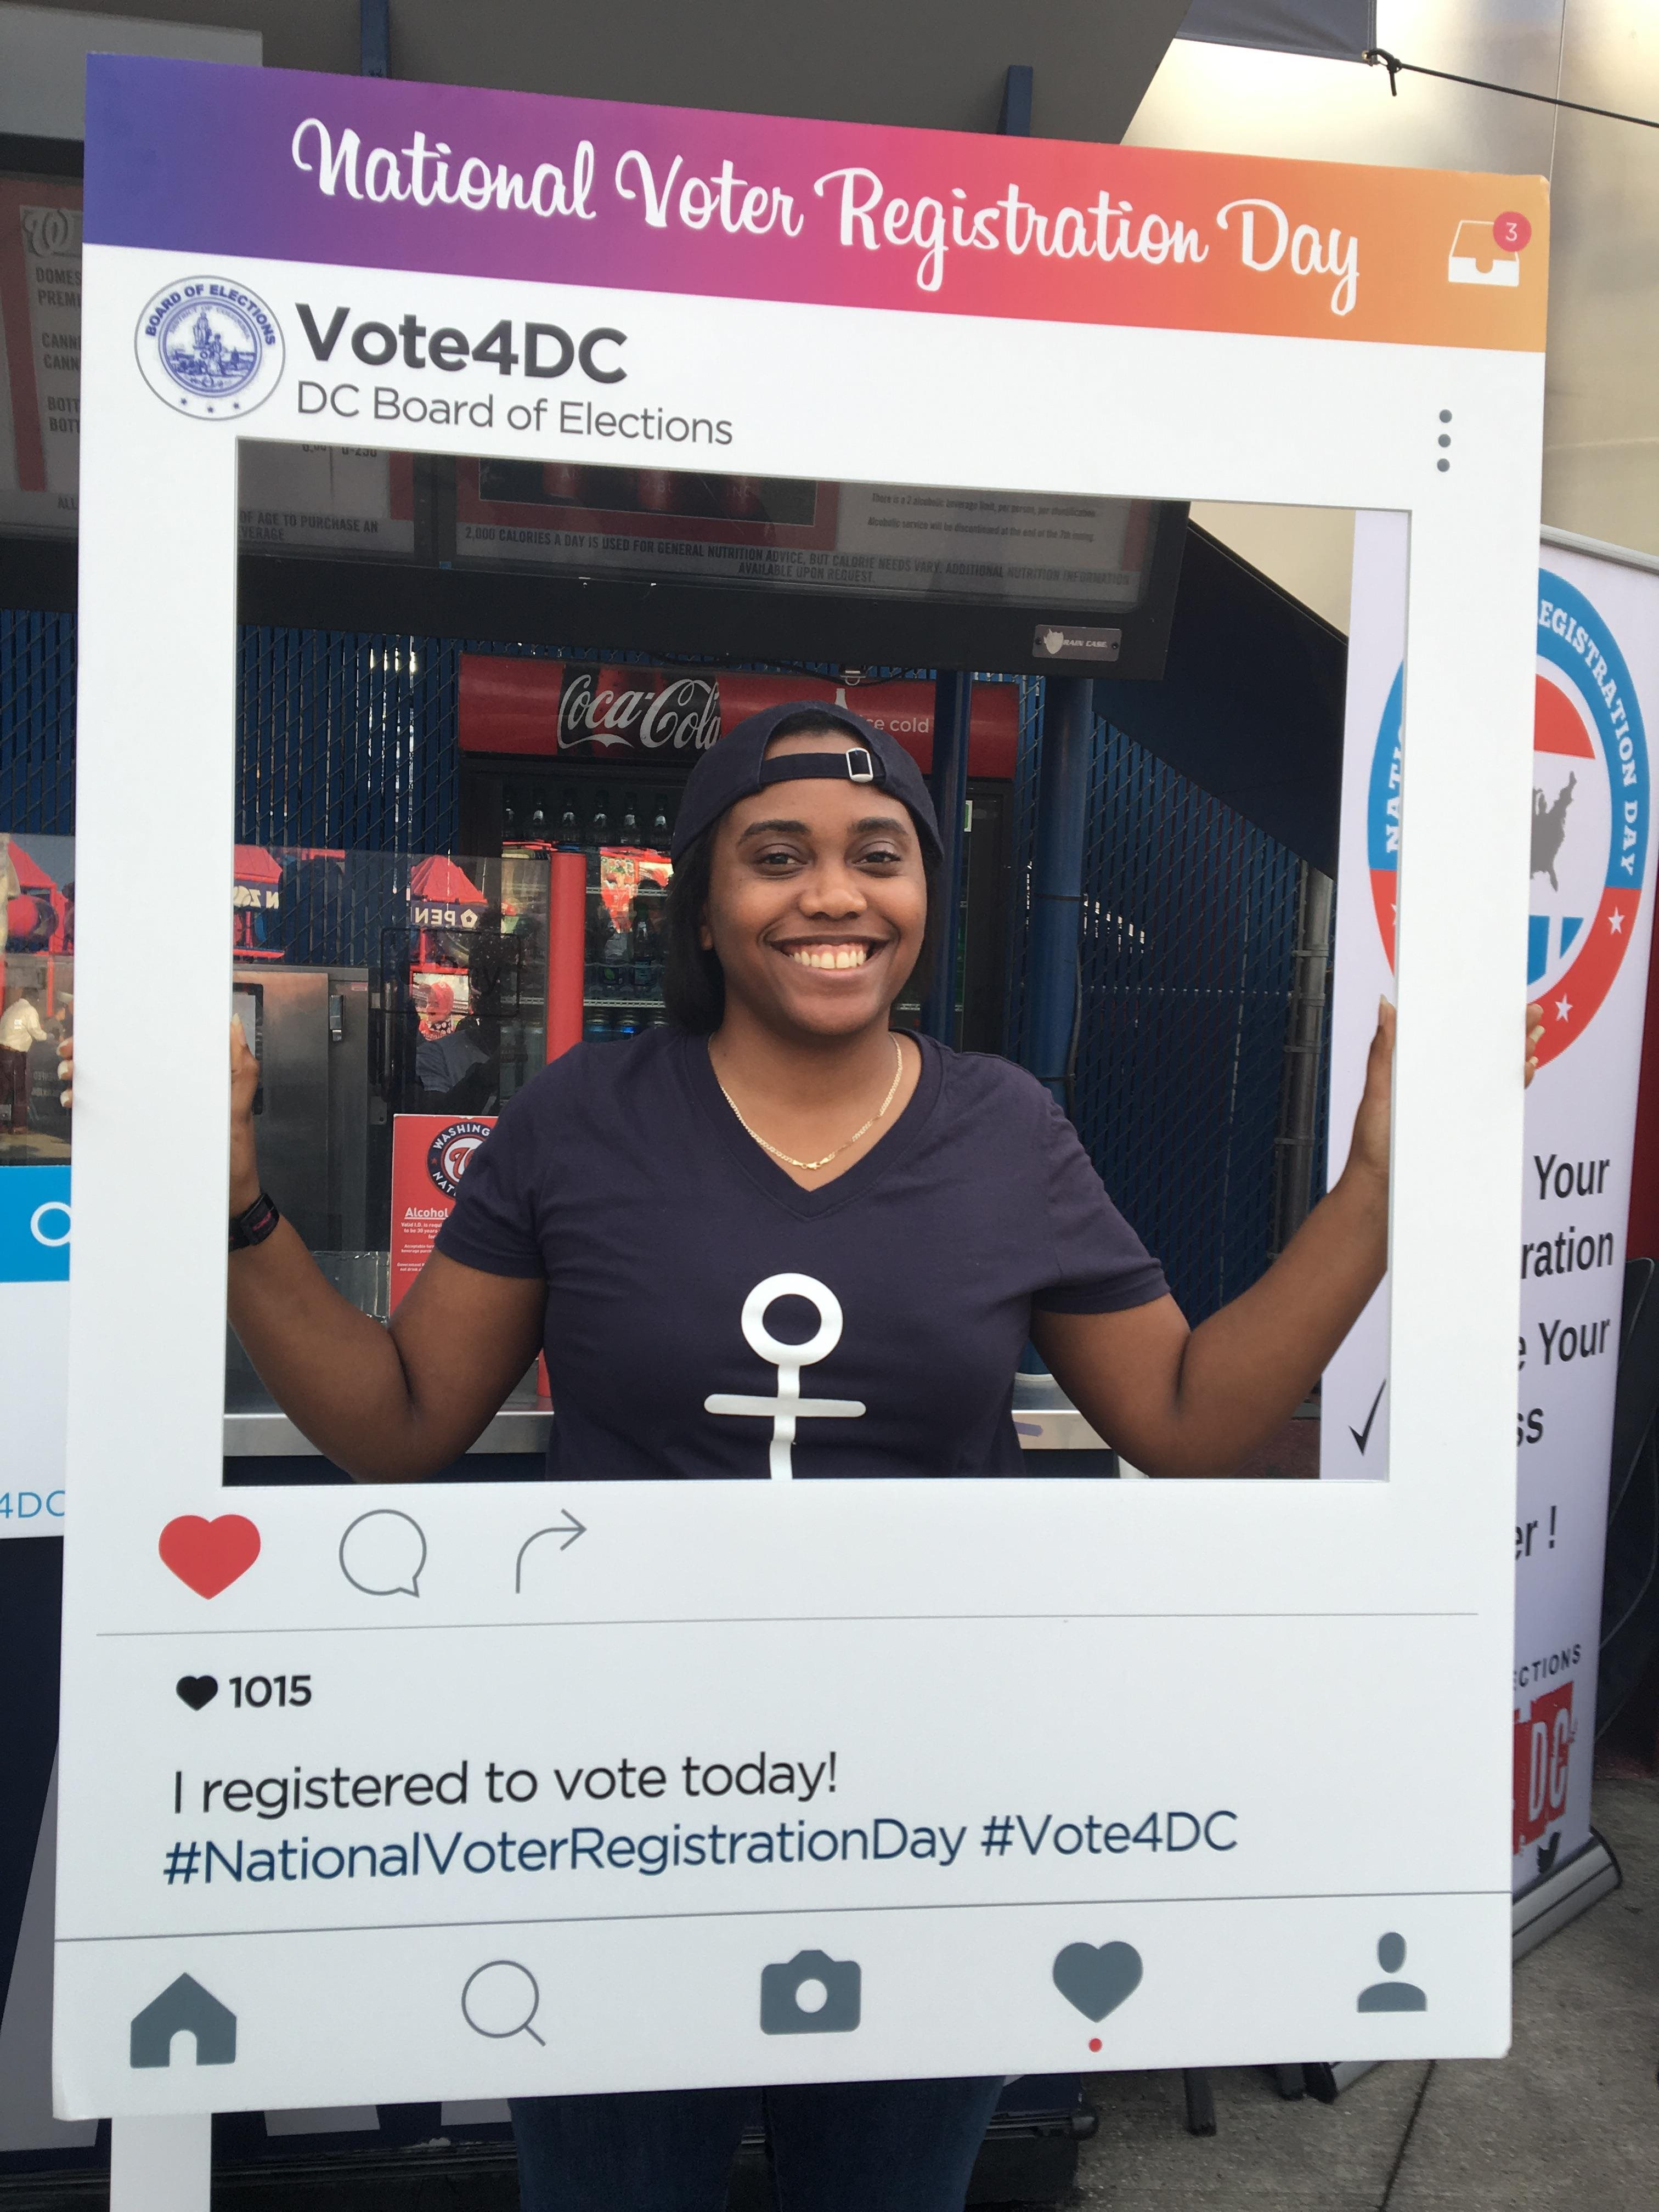 National Voter Registration Day at Nats Park